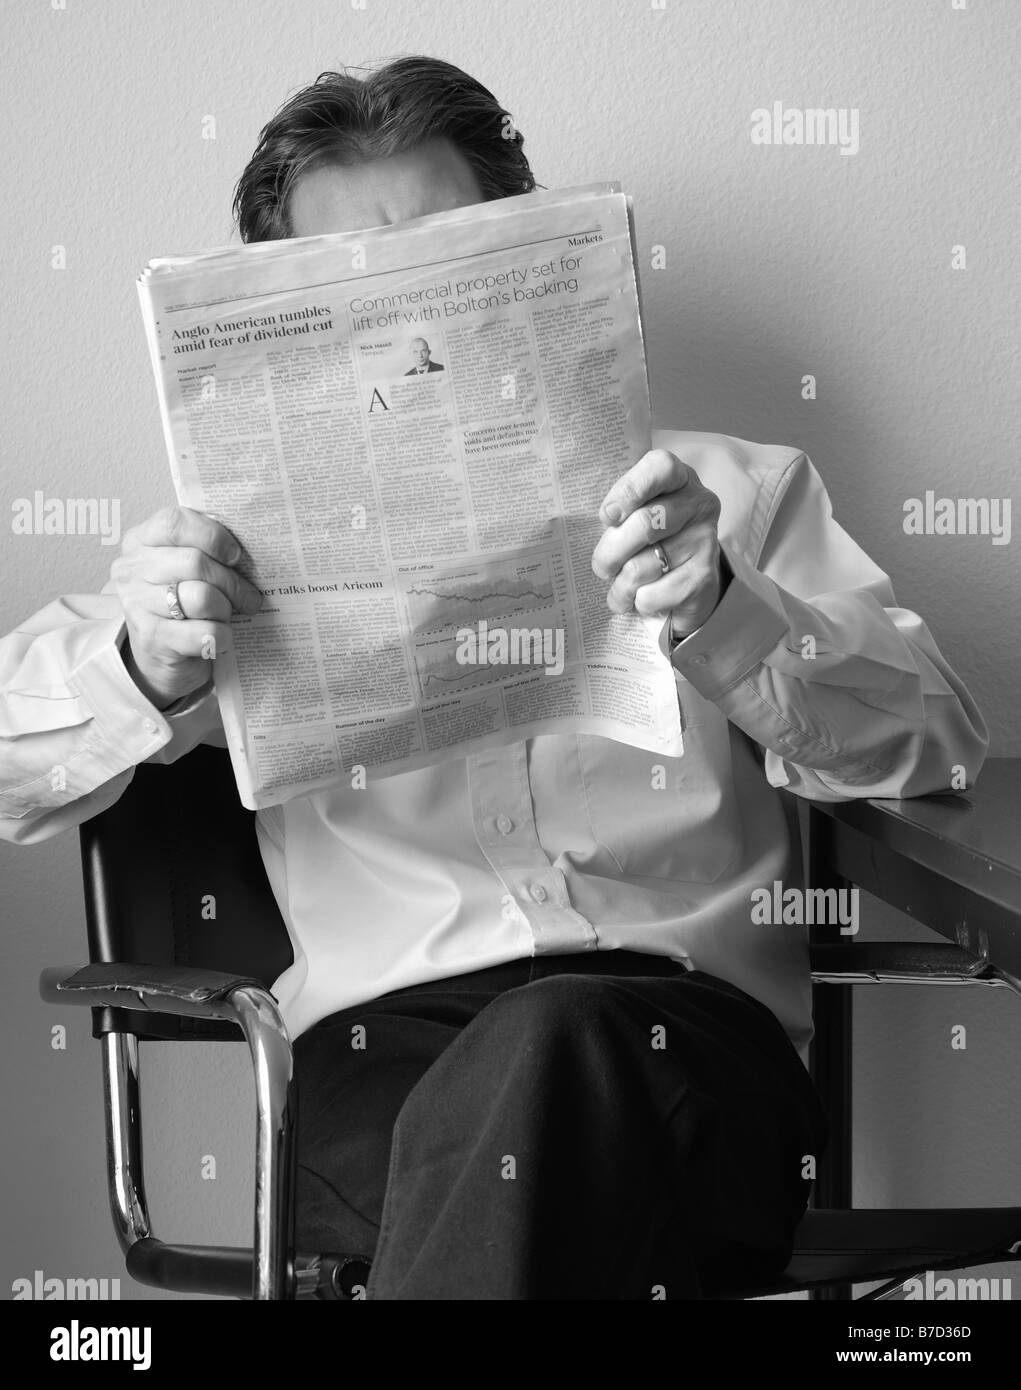 Image reflecting the credit crunch crisis within the bank system the effect on business, stock market and the man Stock Photo